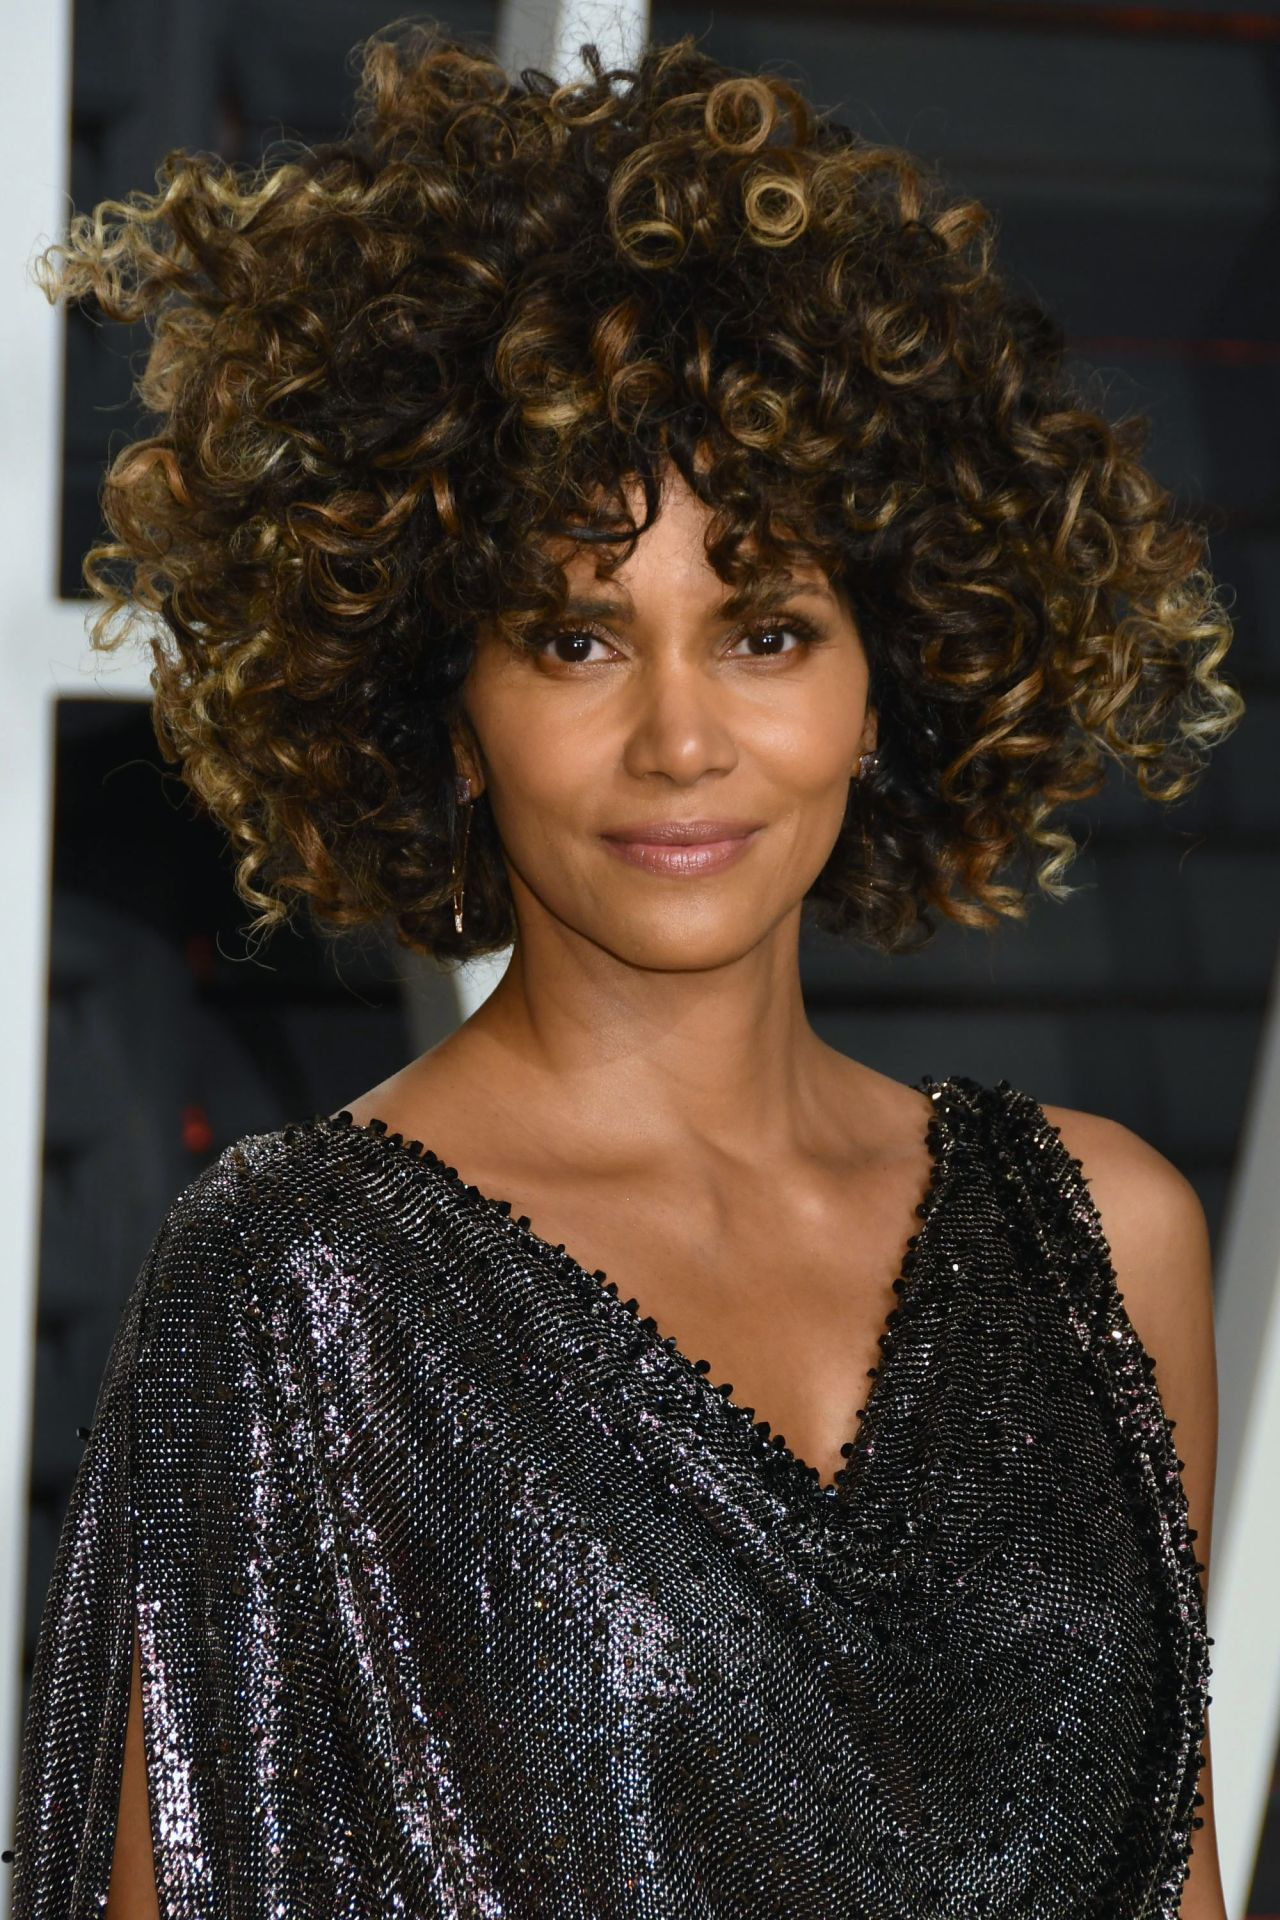 Halle Berry at Vanity Fair Oscar 2017 Party in Los Angeles Halle Berry